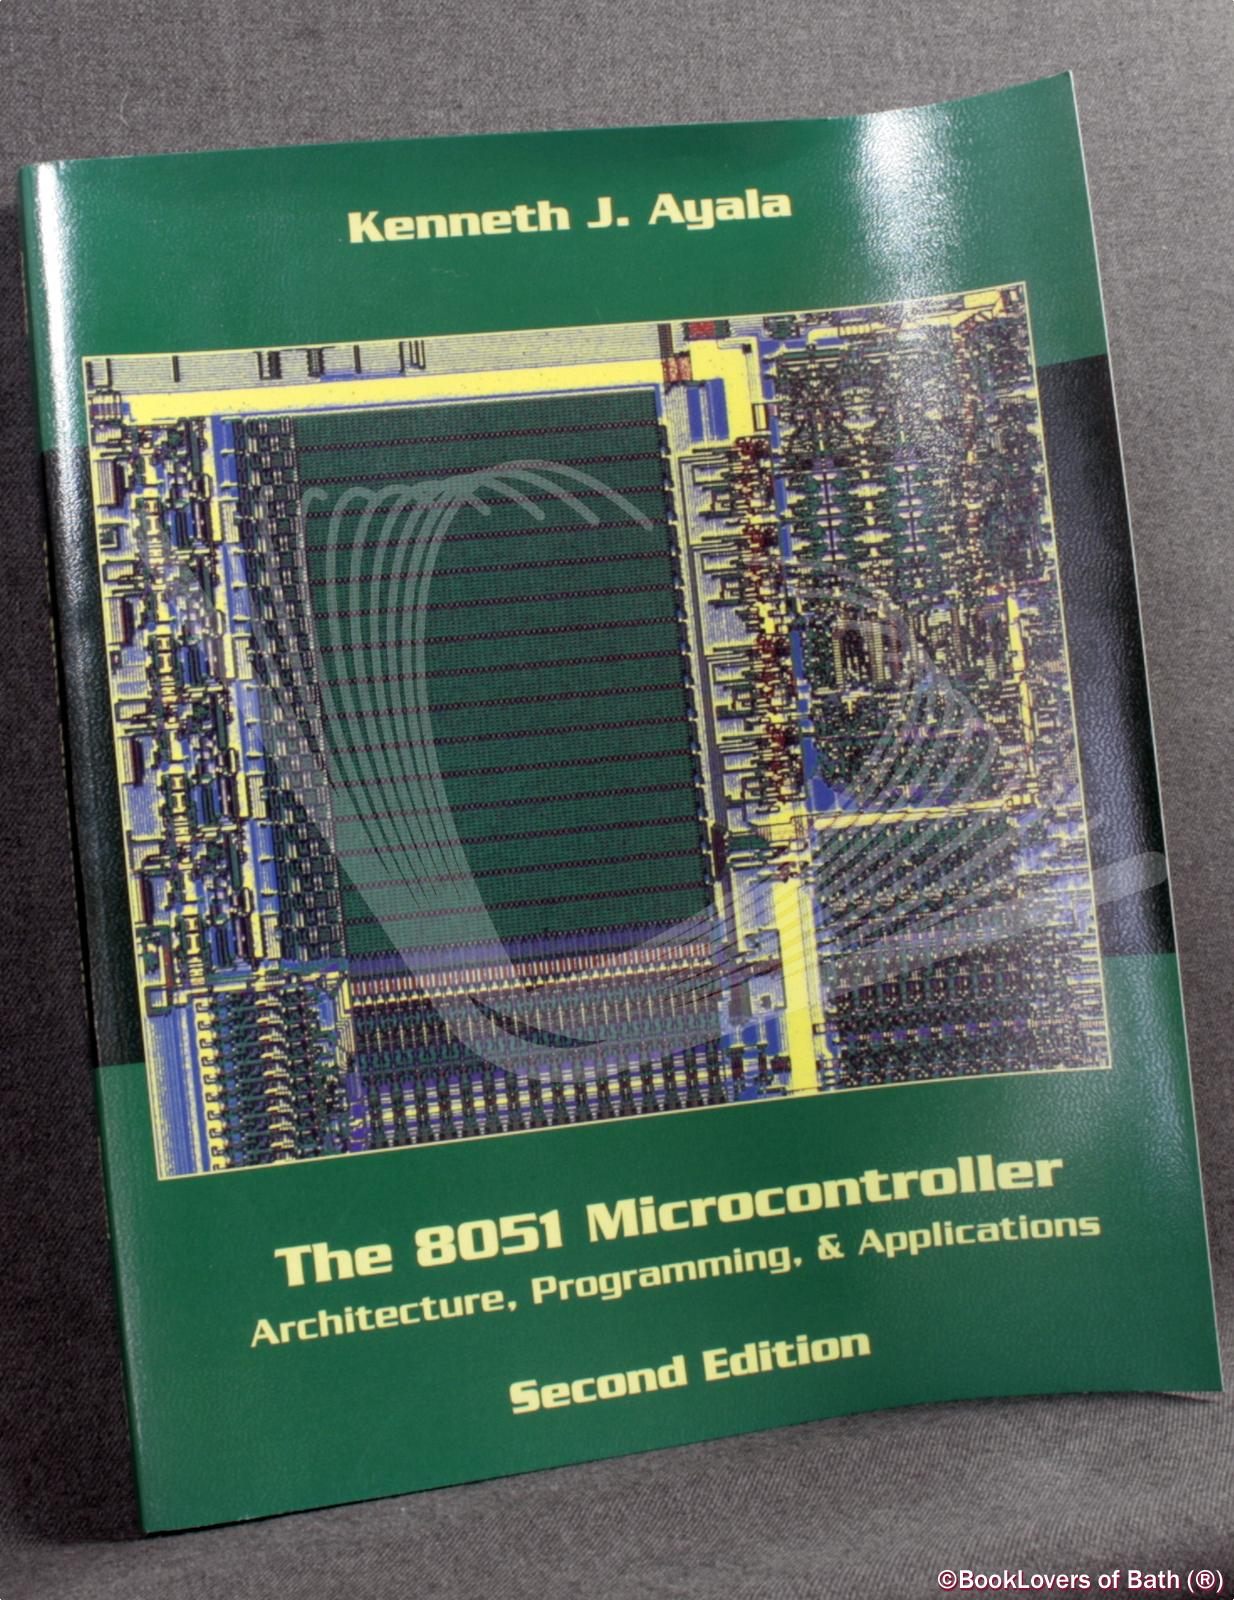 The 8051 Microcontroller: Architecture, Programming and Applications - Kenneth Ayala